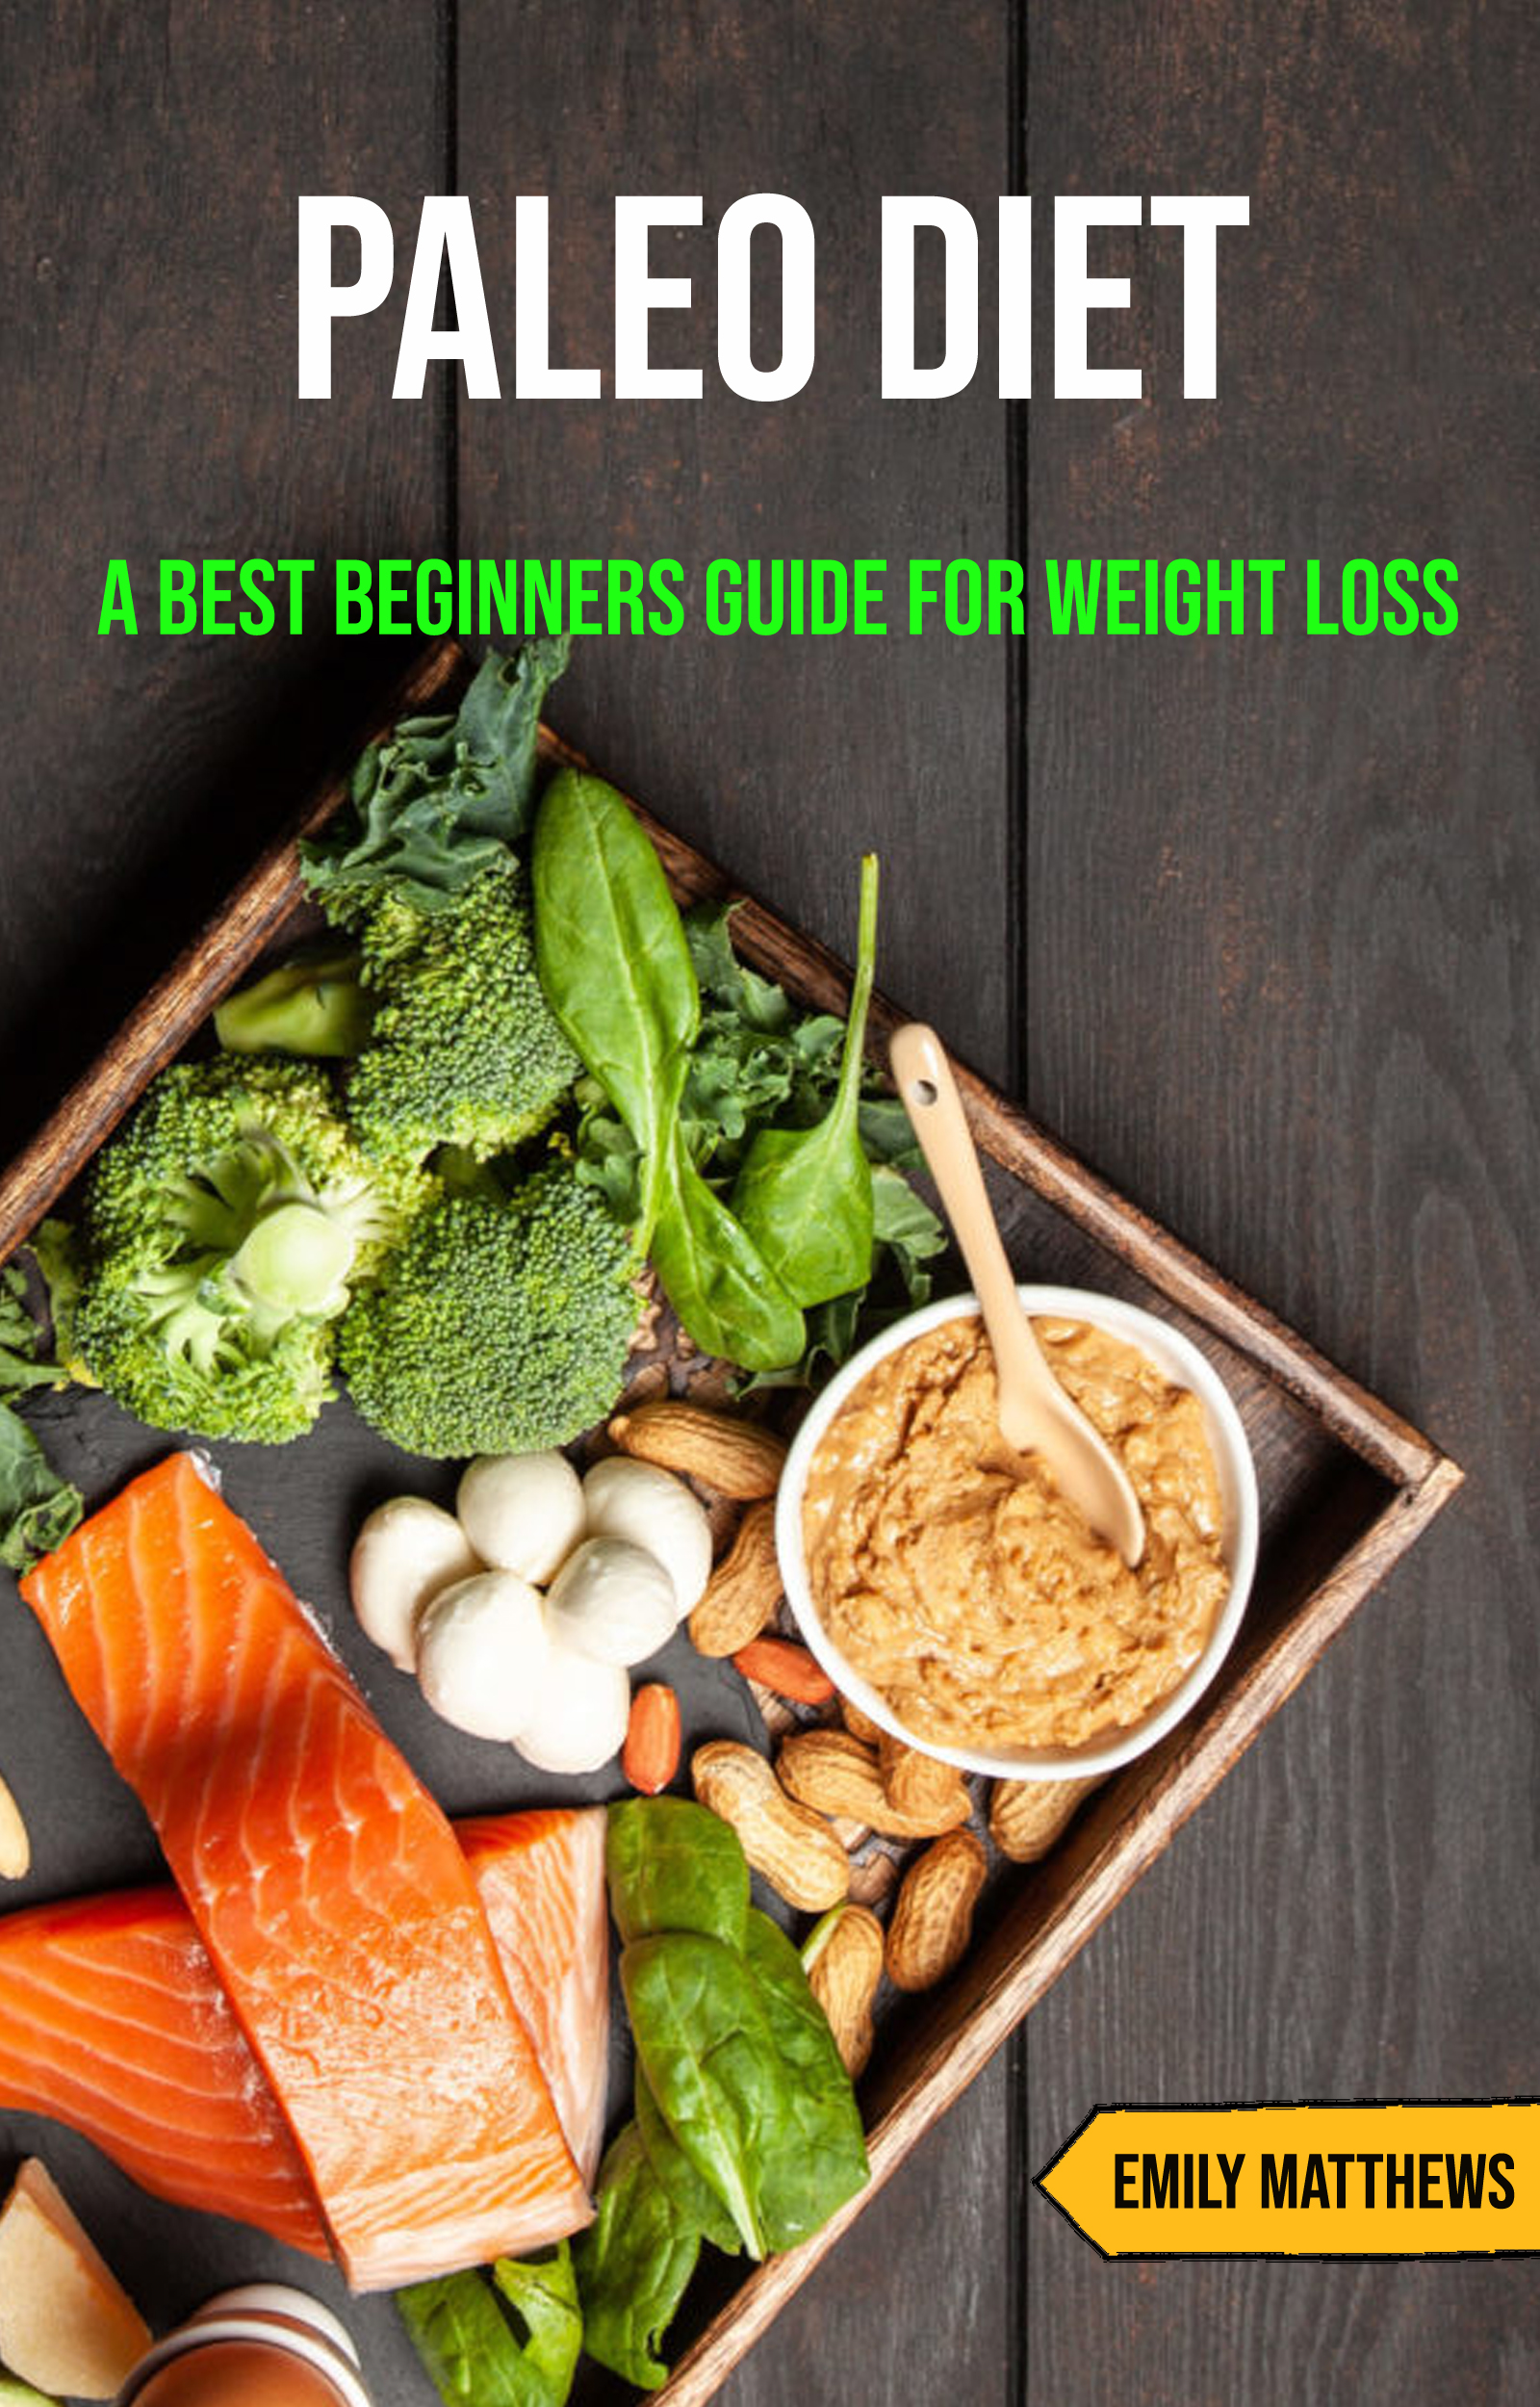 Paleo diet: a best beginners guide for weight loss